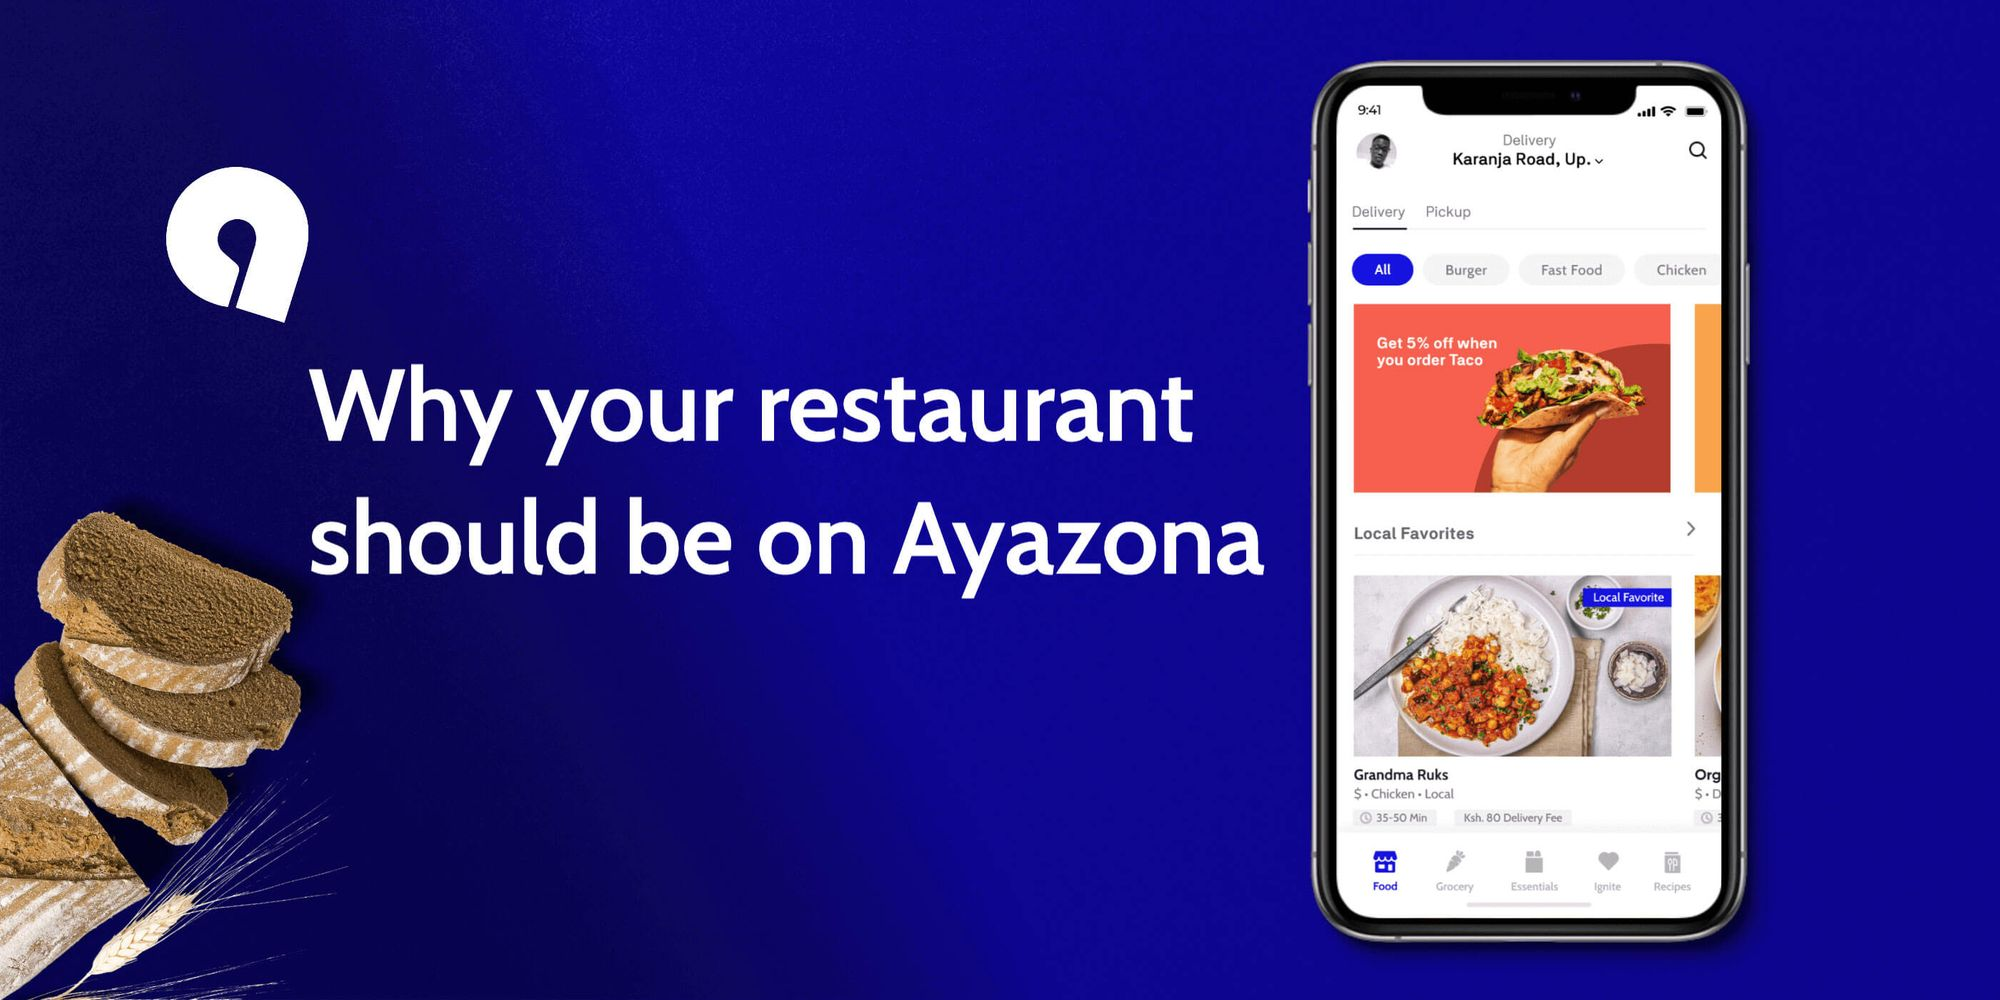 Why your kitchen should be on Ayazona